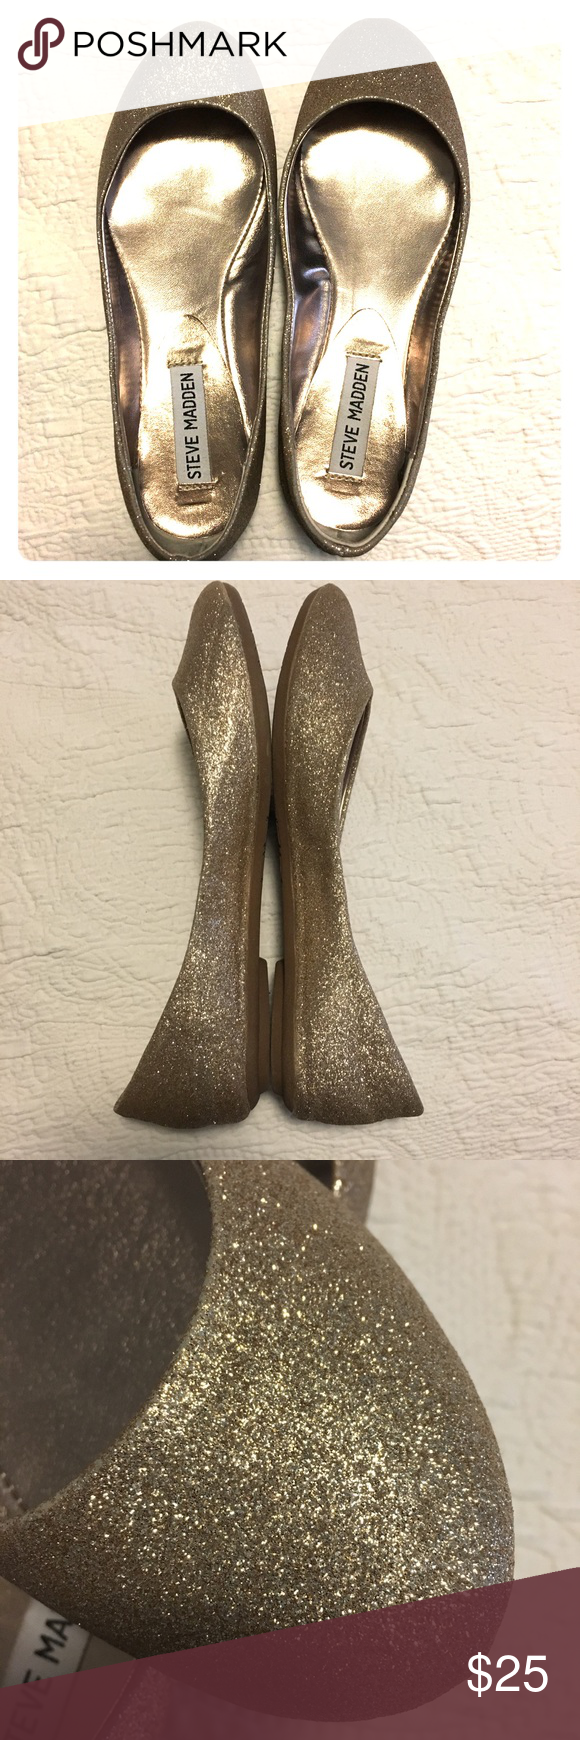 Steve Madden Sparkly Gold Flats Sparkly shoes, Gold